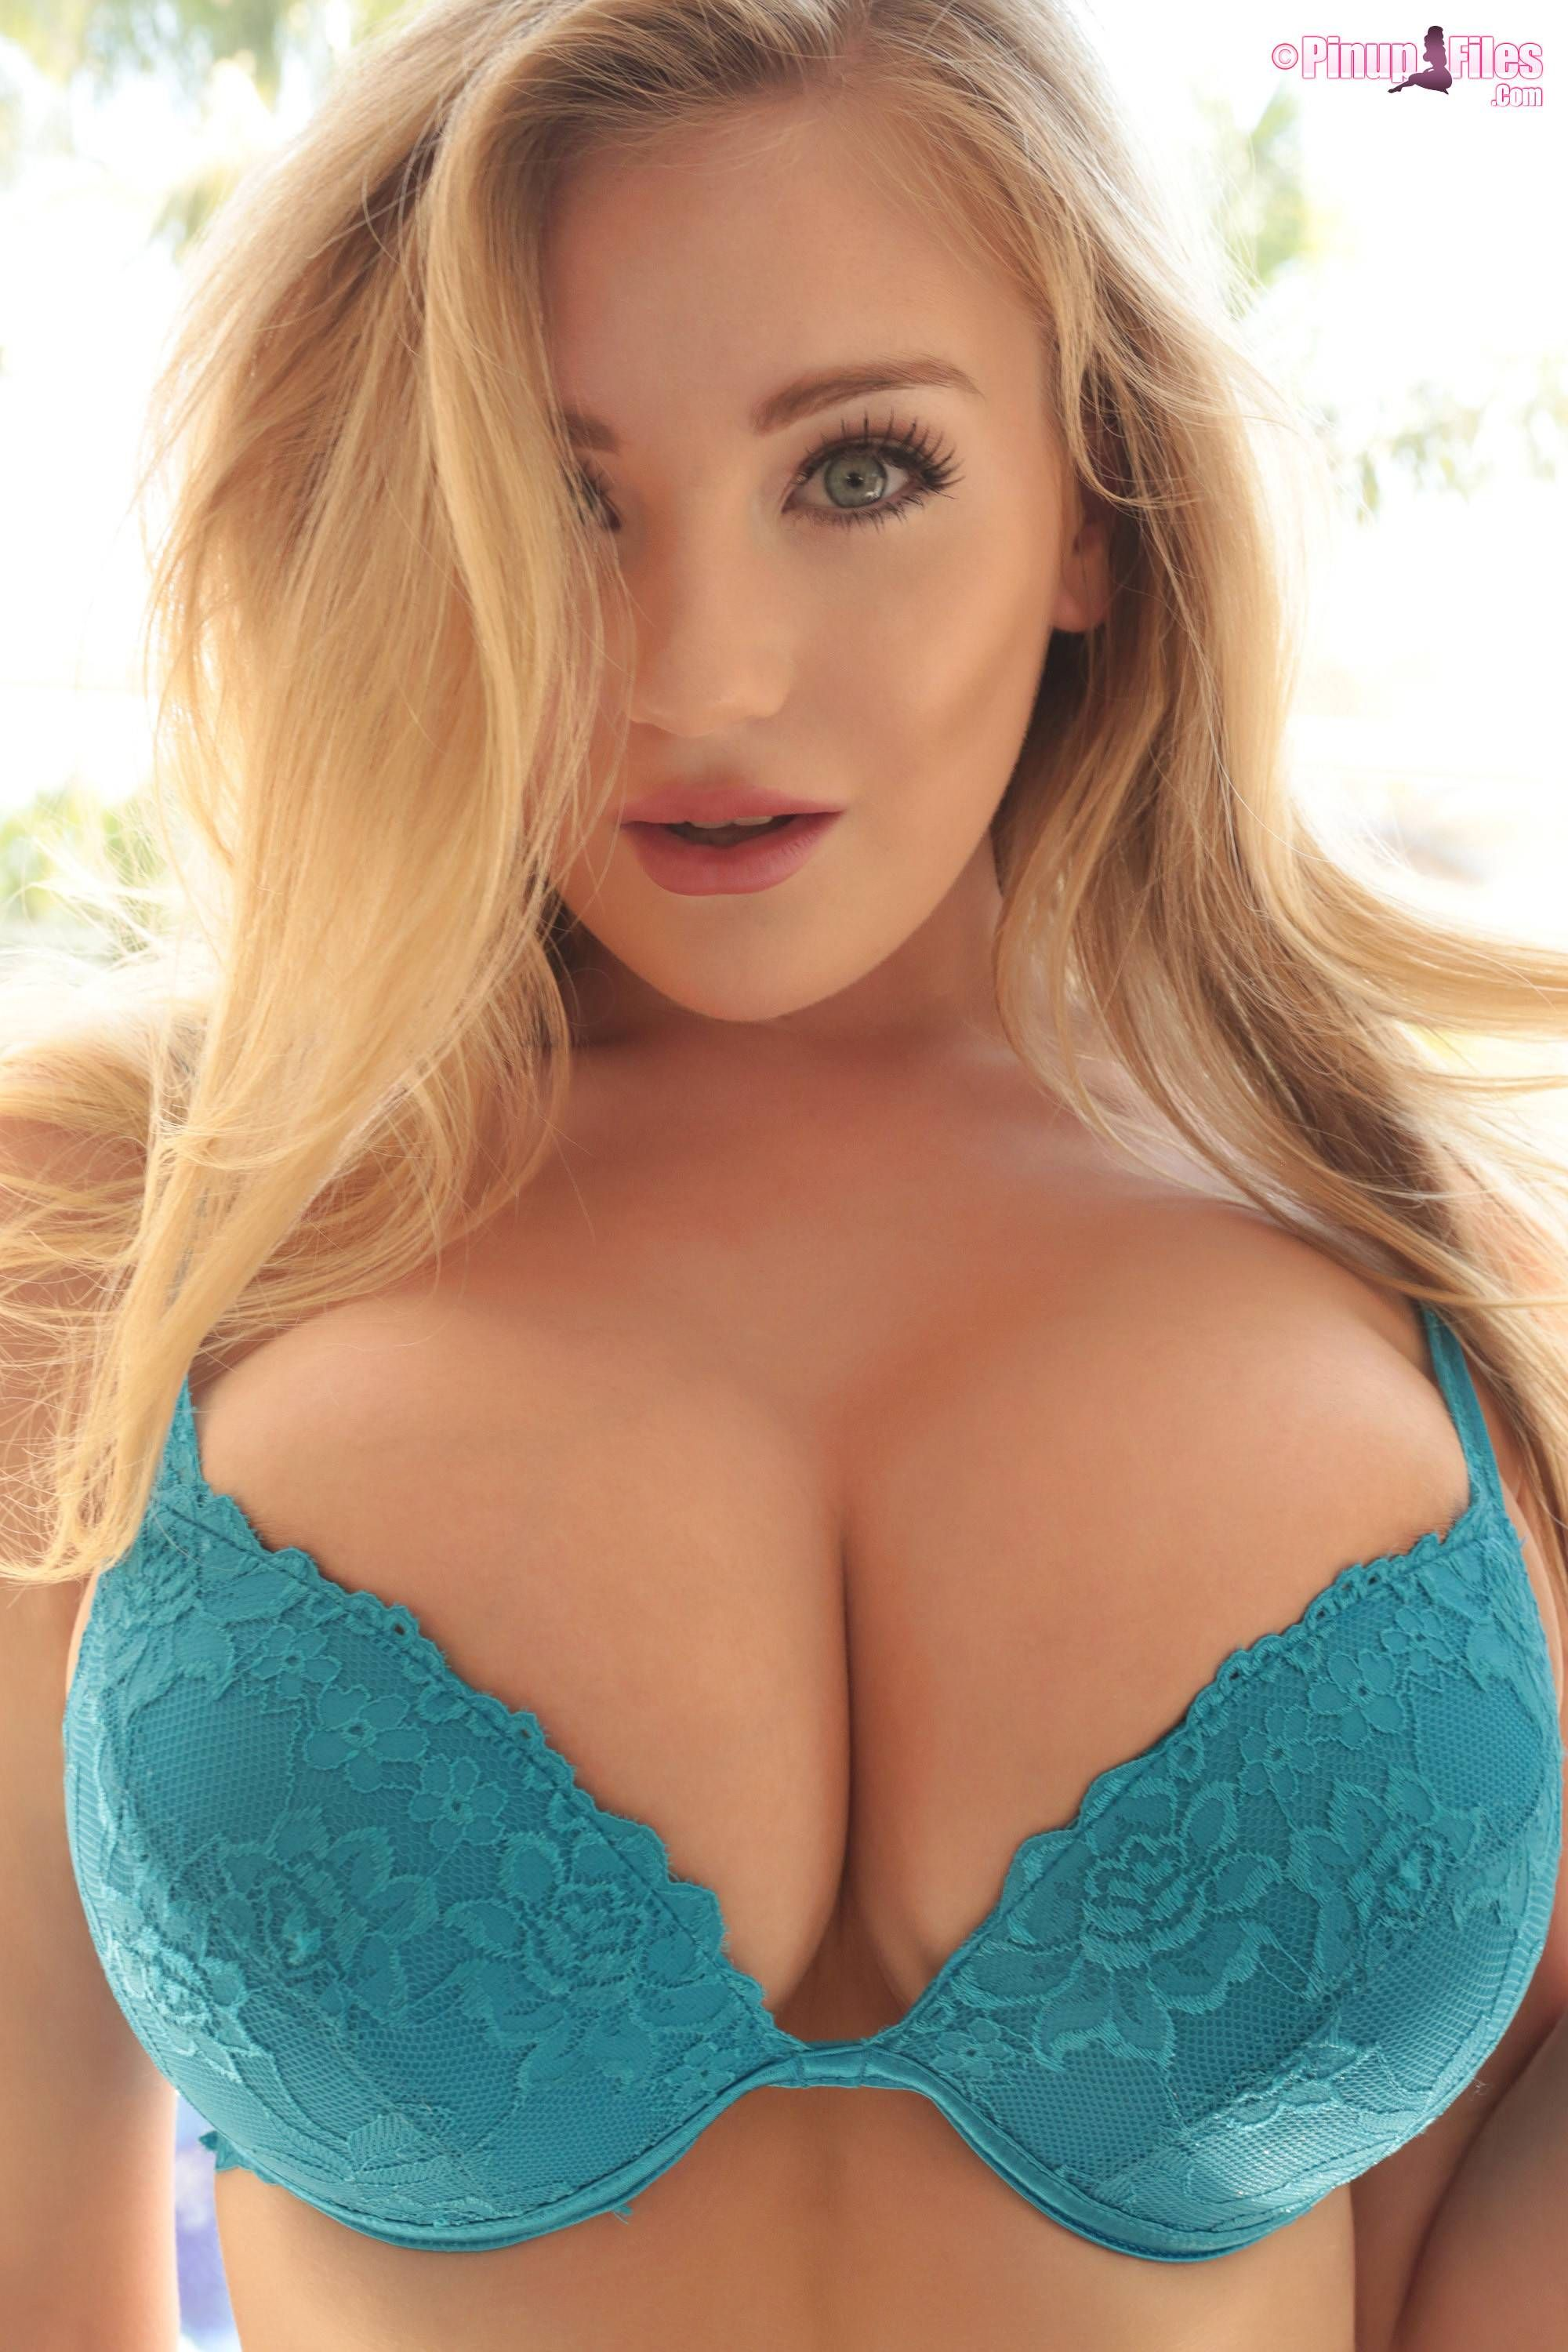 Gorgeous blonde model Beth Lily in blue bra.